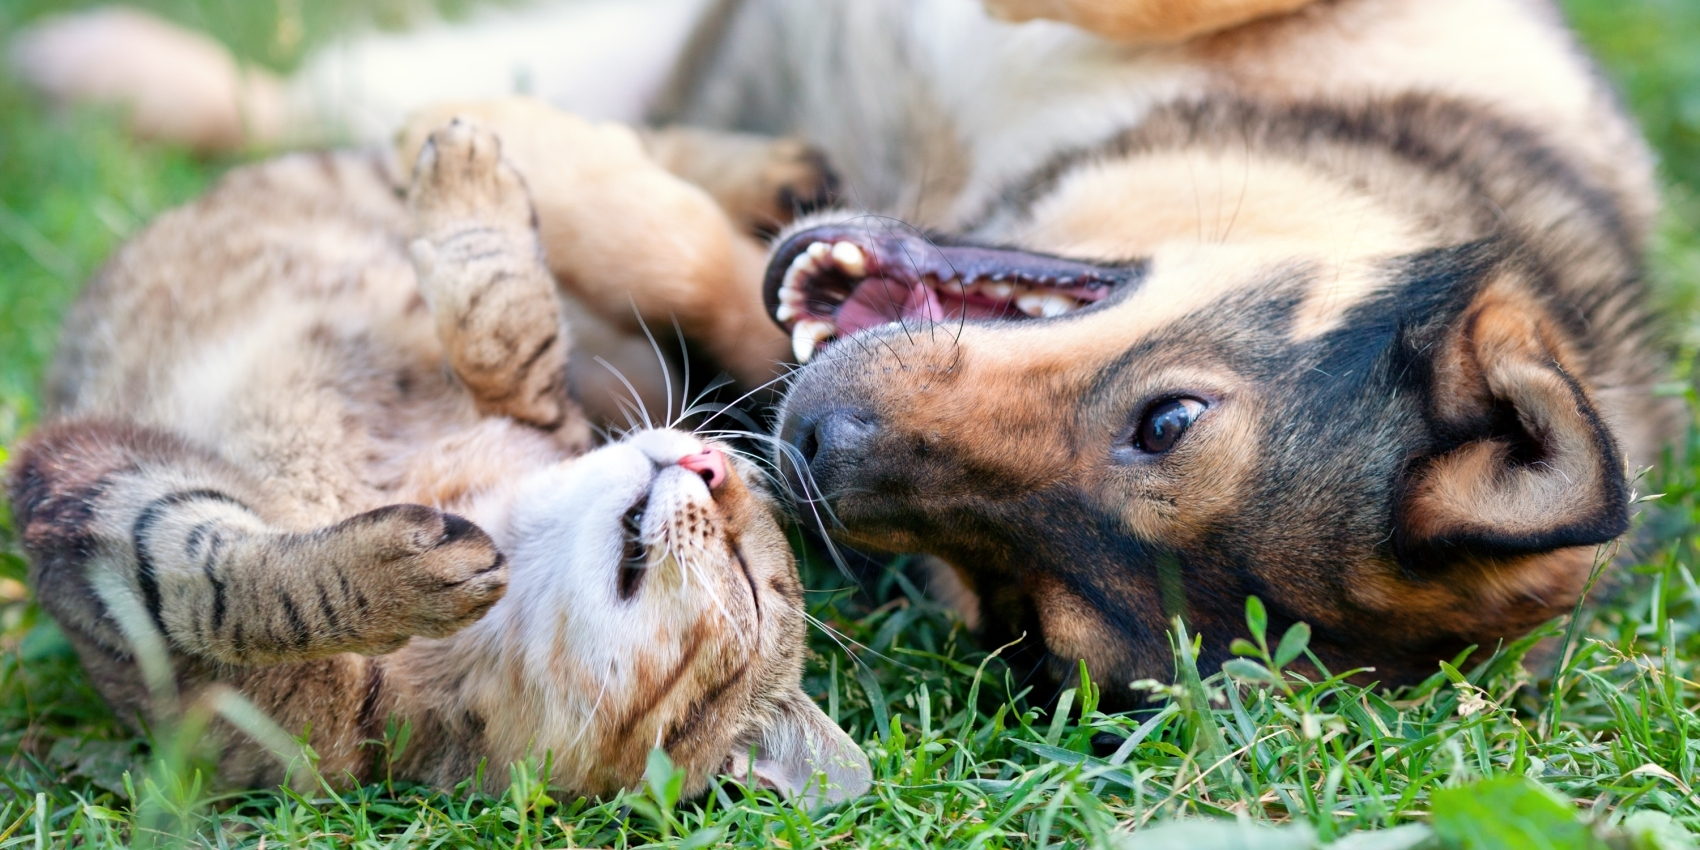 Caninsulin.com cat and dog playing in grass outside